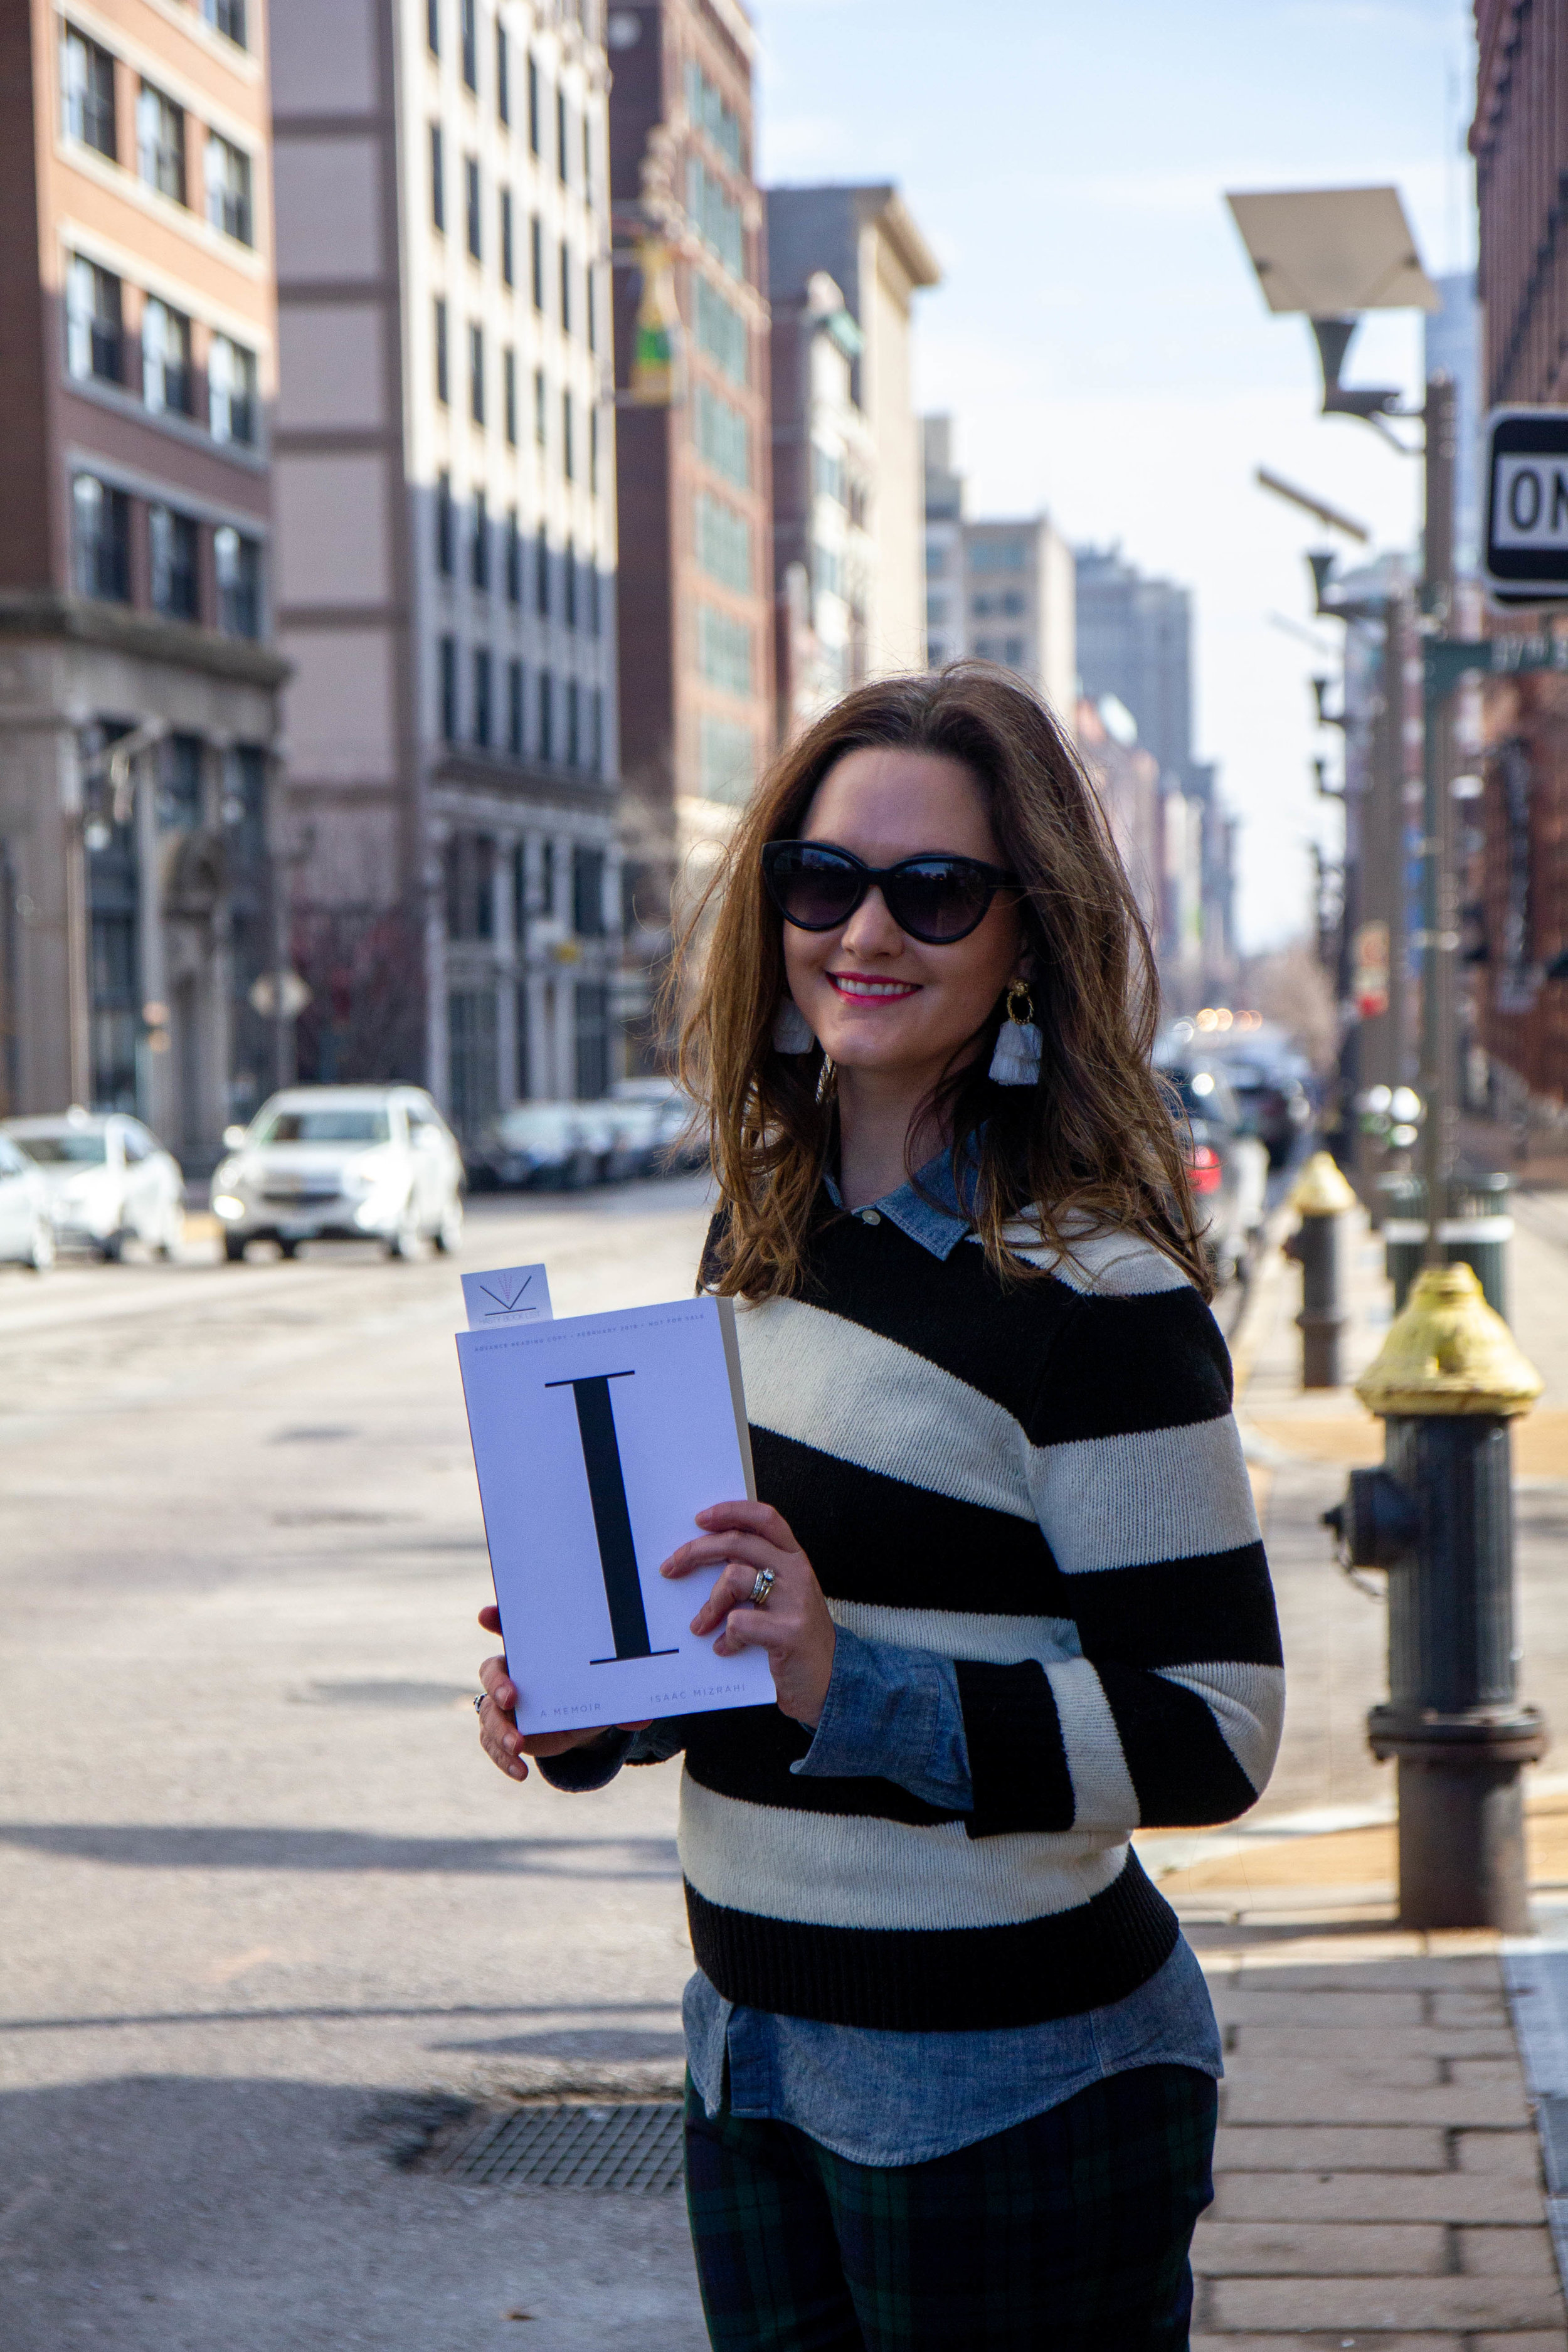 Reading I.M A Memoir by Isaac Mizrahi at the Historic Garment District in St. Louis, MO